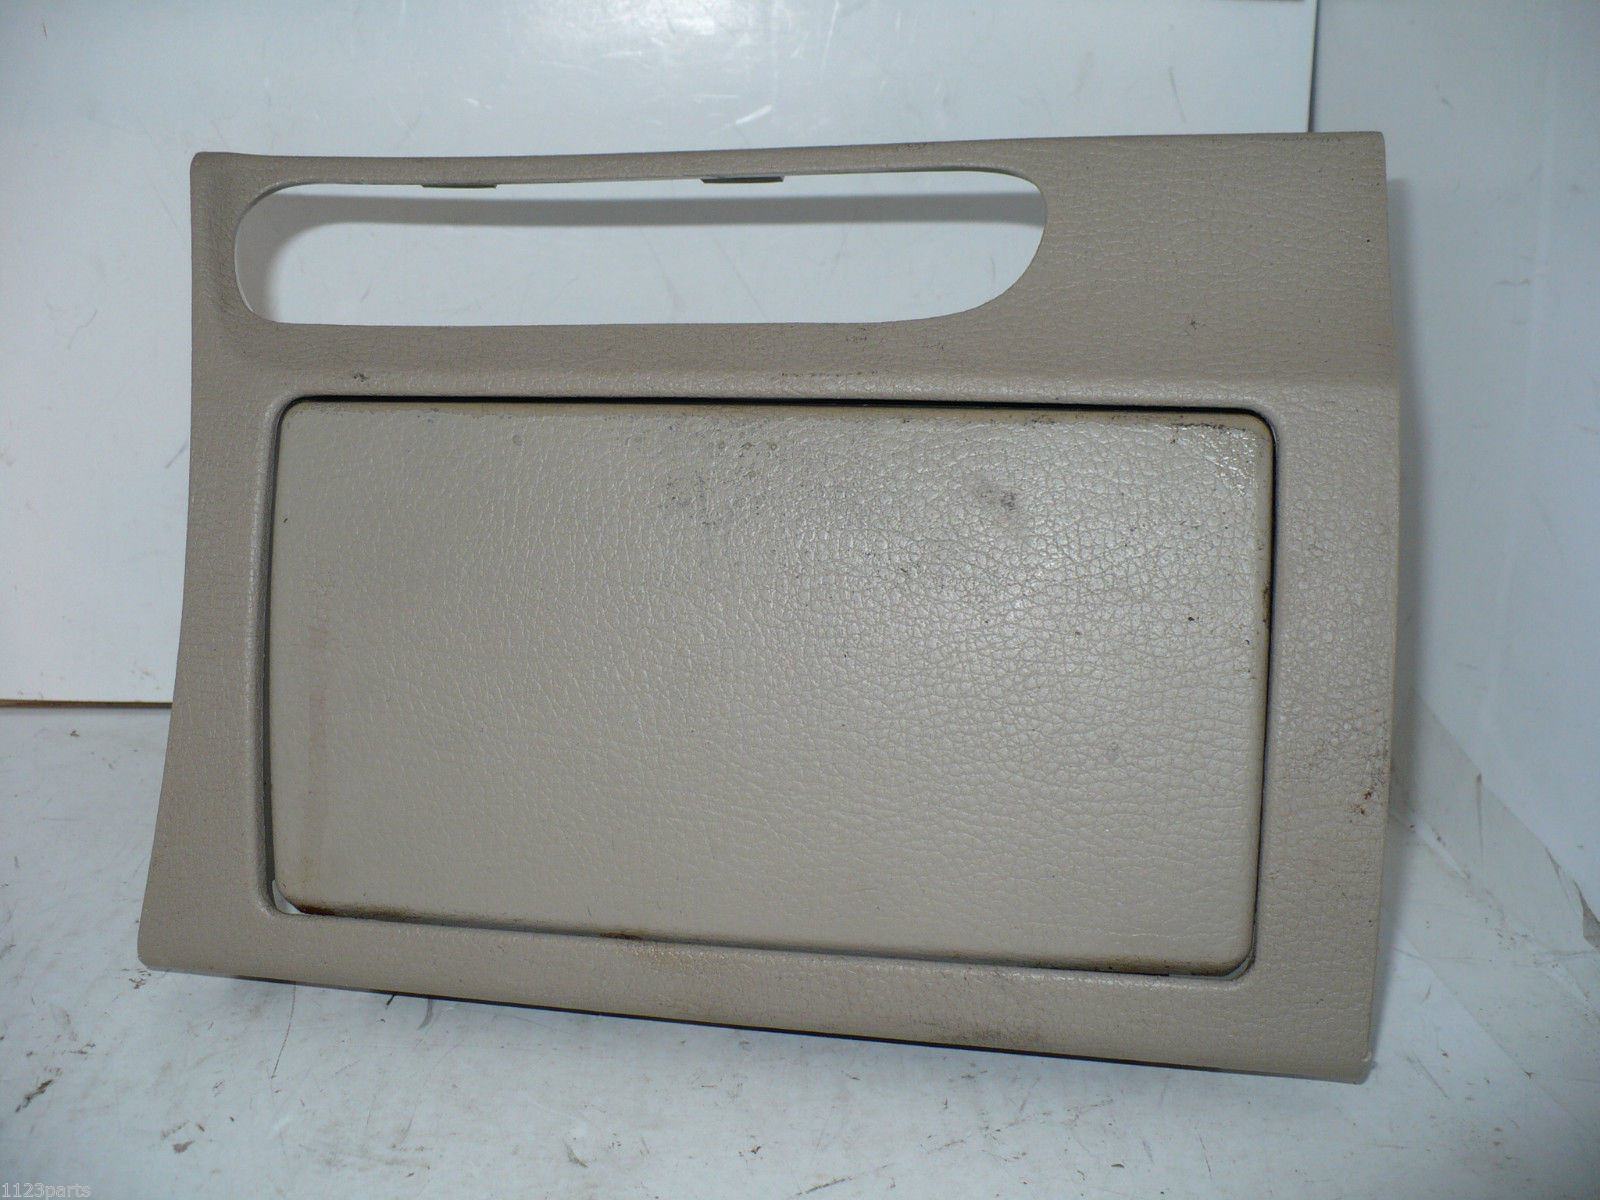 04 2004 Mazda 3 Center Console Bezel Trim w Drink Cup Holder Original OEM Beige